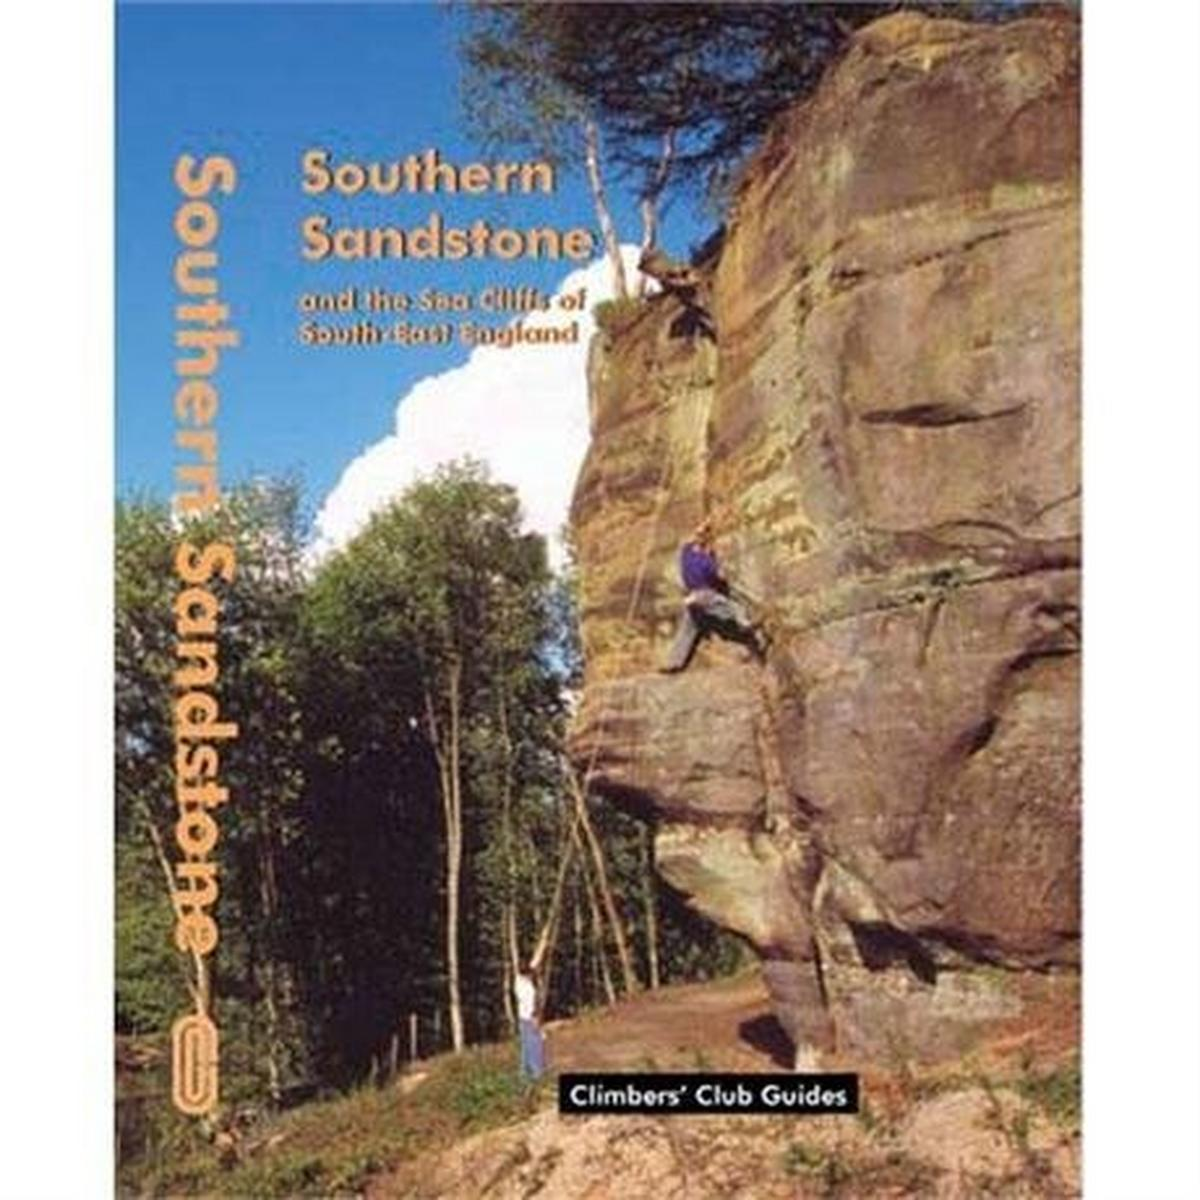 Miscellaneous Climbing Guide Book: Southern Sandstone